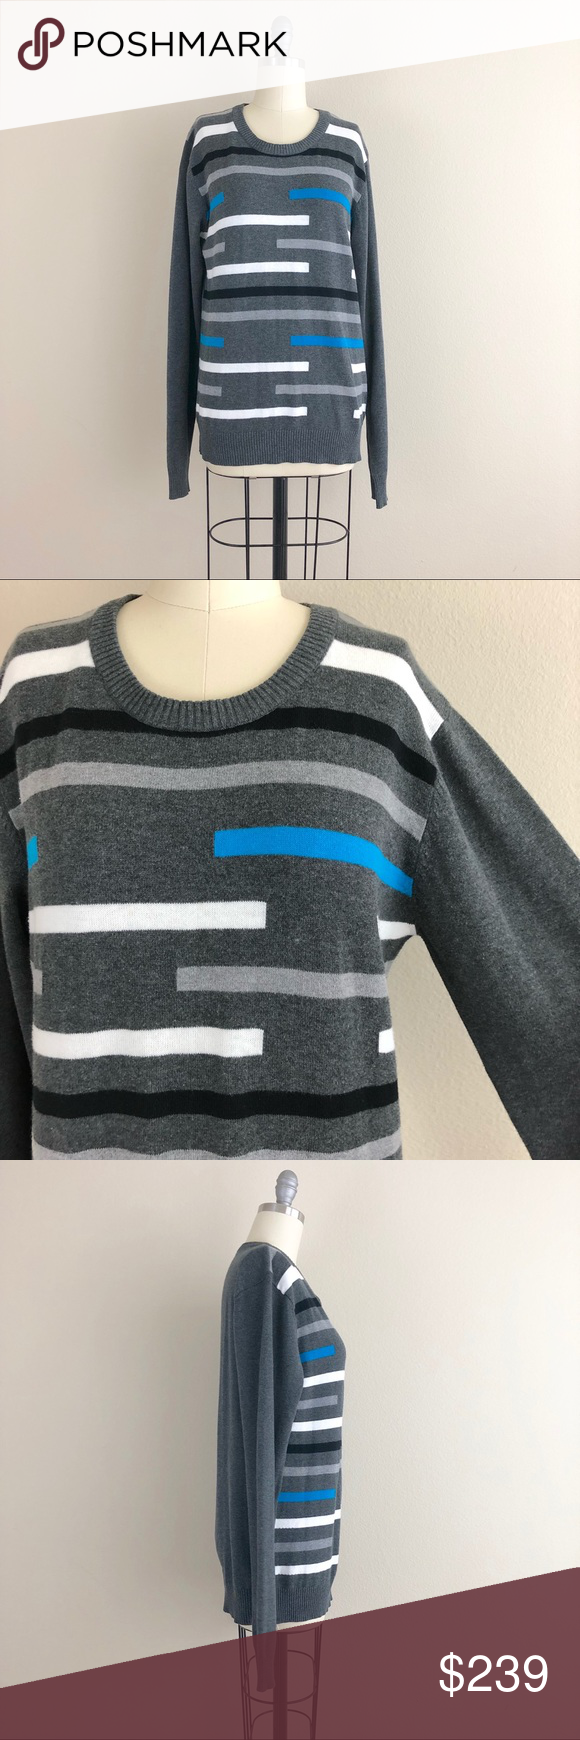 28a5ddd11 Gucci Striped Sweater Gucci striped men's sweater. Could also be worn by a  woman. Dark gray with half stripes in blue, white and black.